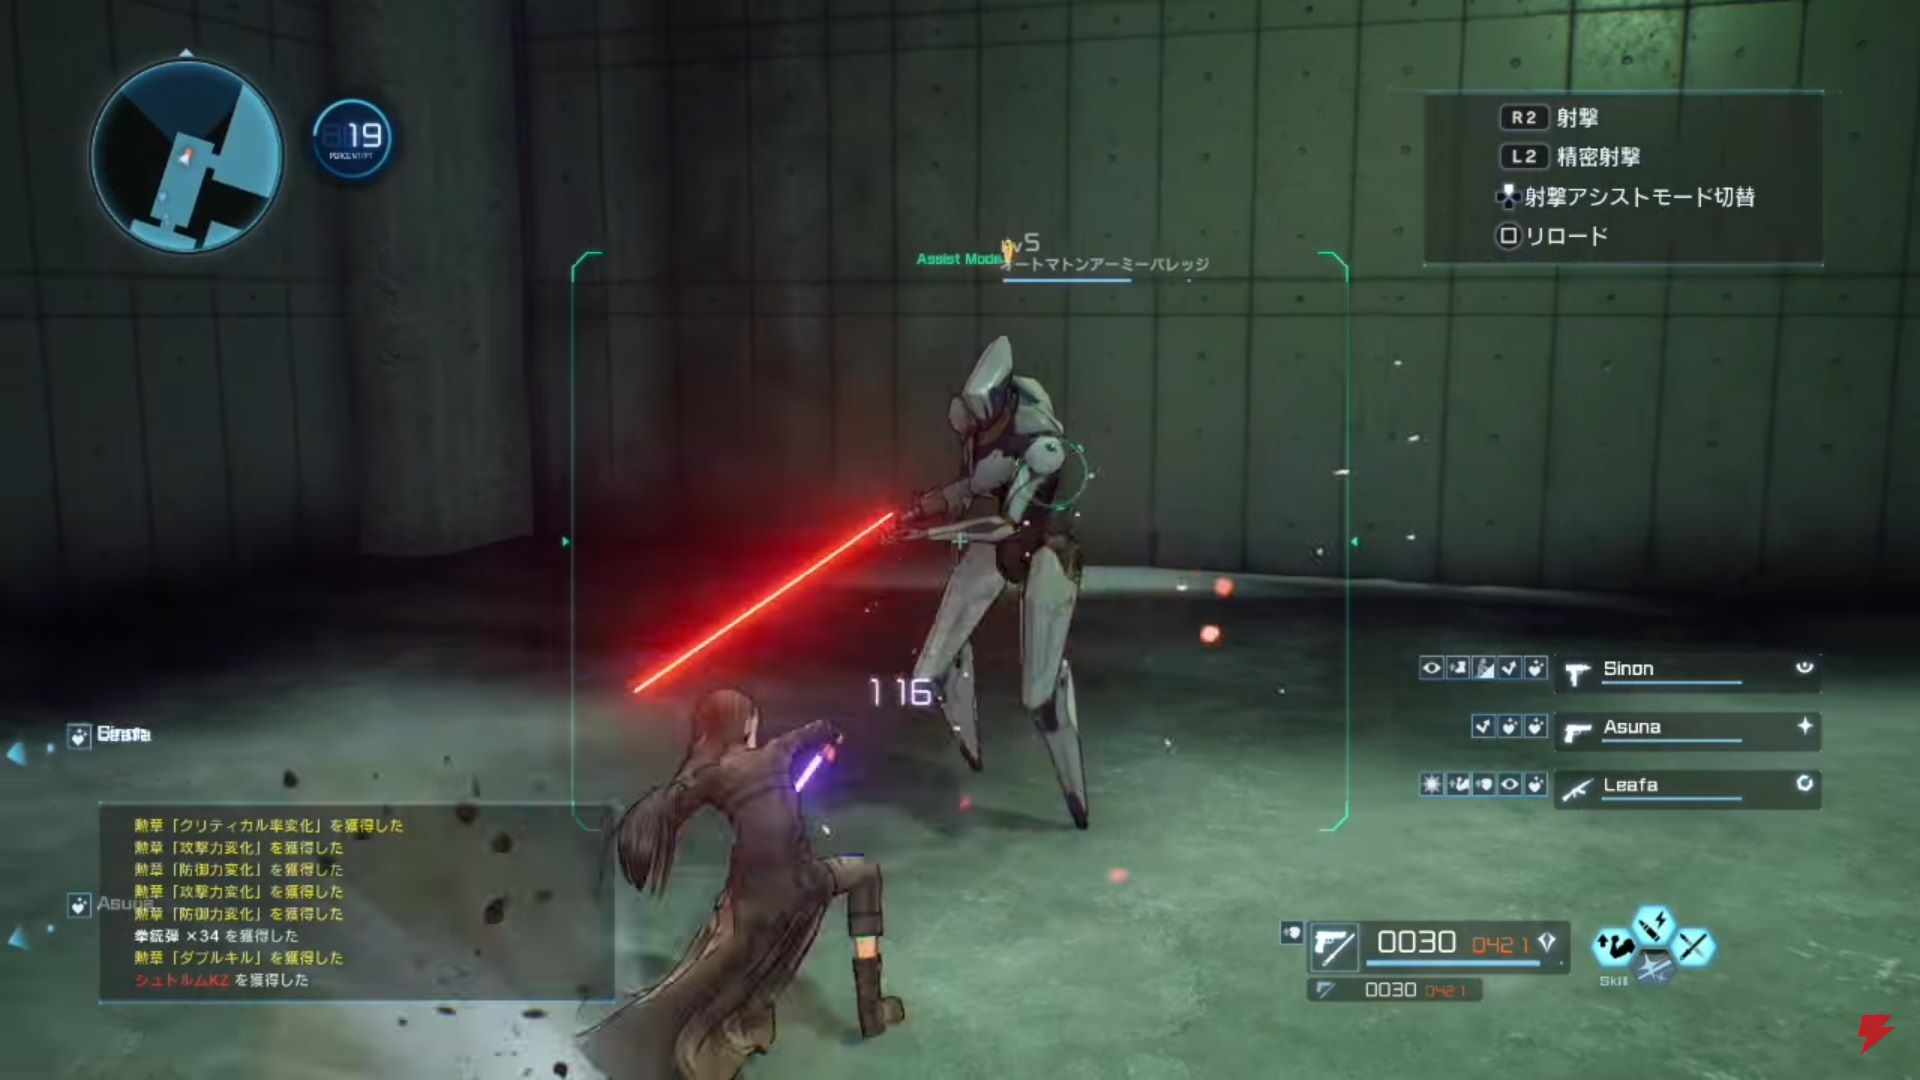 Sword Art Online: Fatal Bullet 8 minute Gameplay Footage